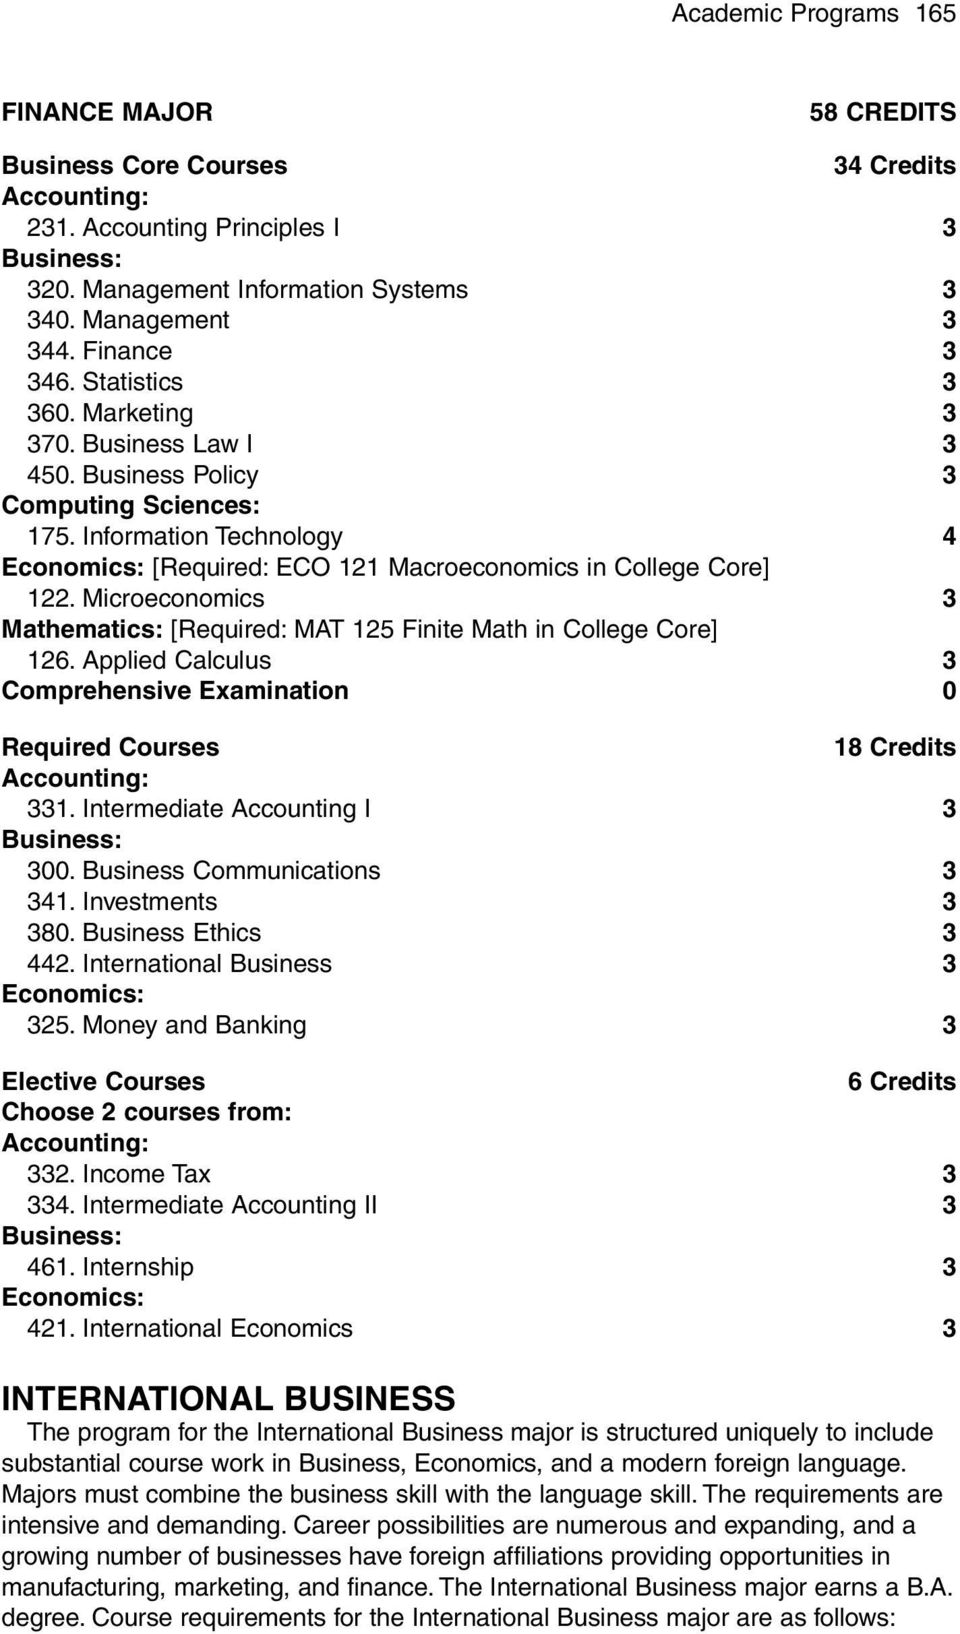 Information Technology 4 [Required: ECO 121 Macroeconomics in College Core] Mathematics: [Required: MAT 125 Finite Math in College Core] Comprehensive Examination 0 Required Courses 18 Credits 331.